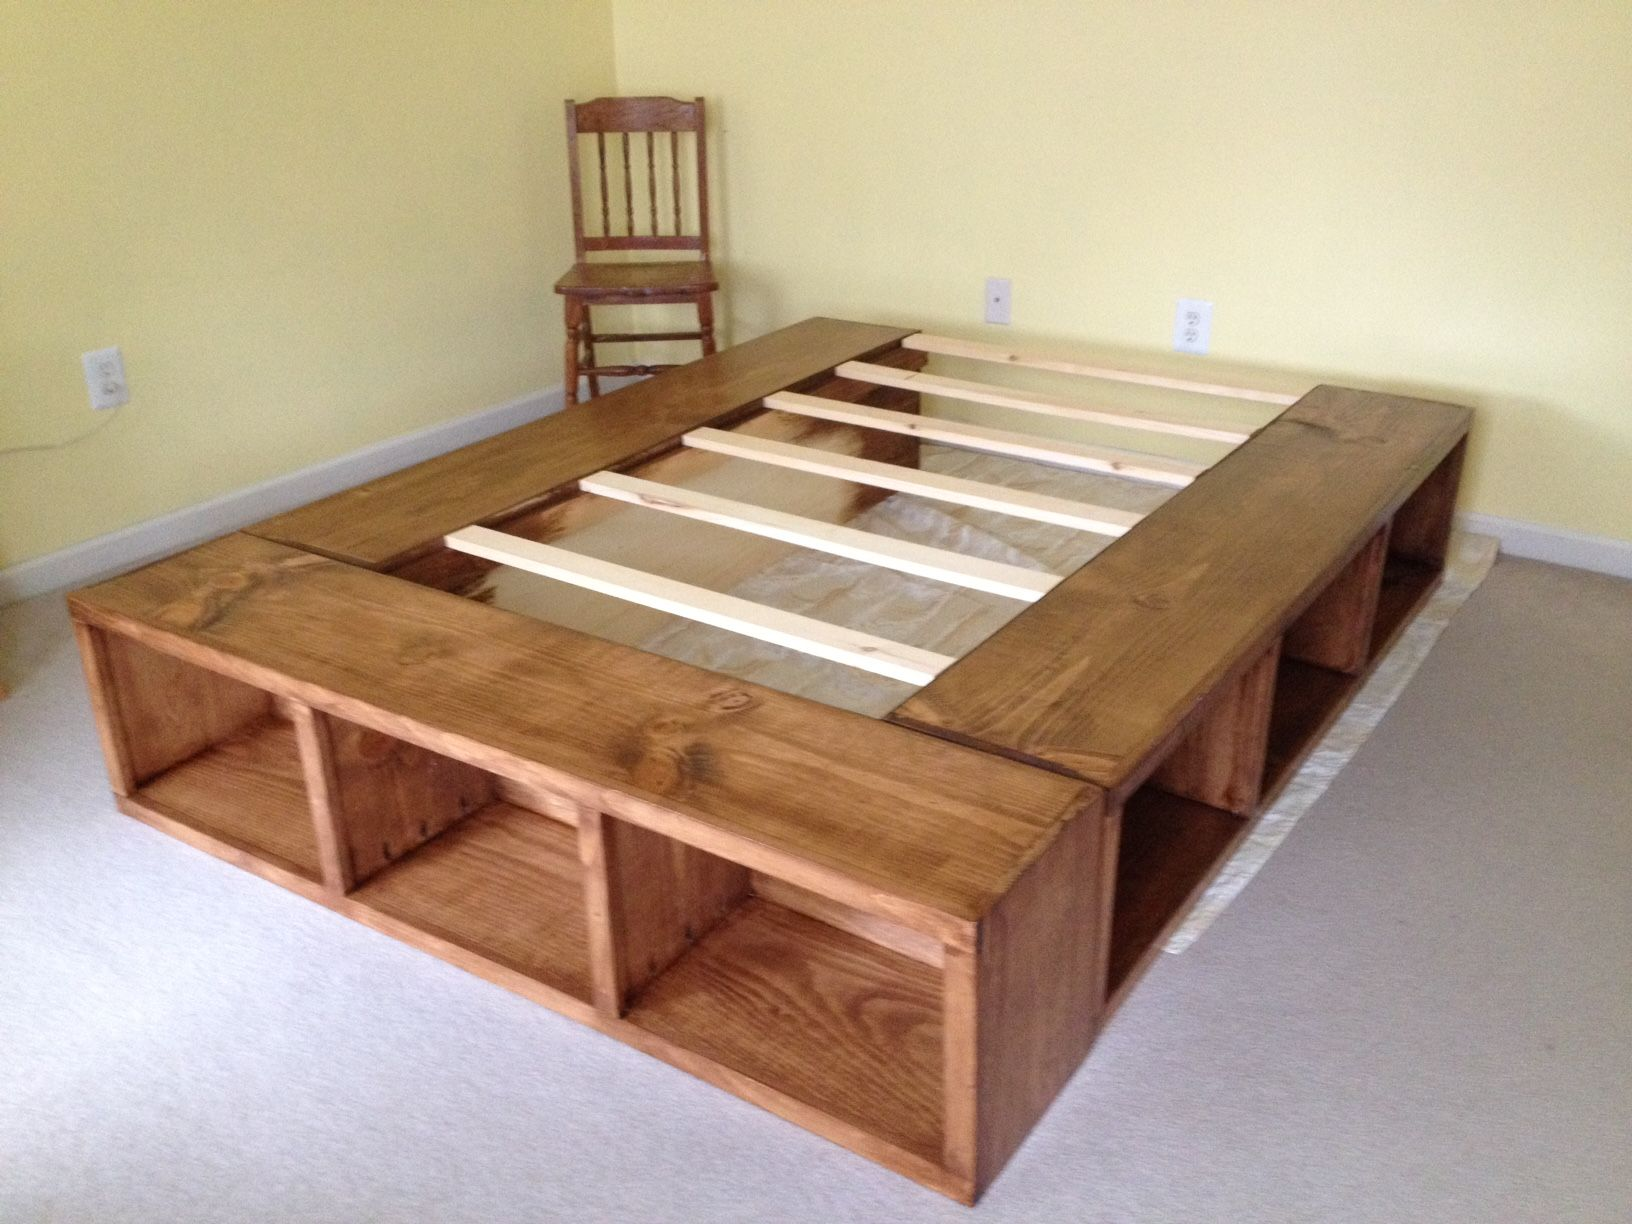 Cama Para Josh With Images Bed Frame With Storage Diy